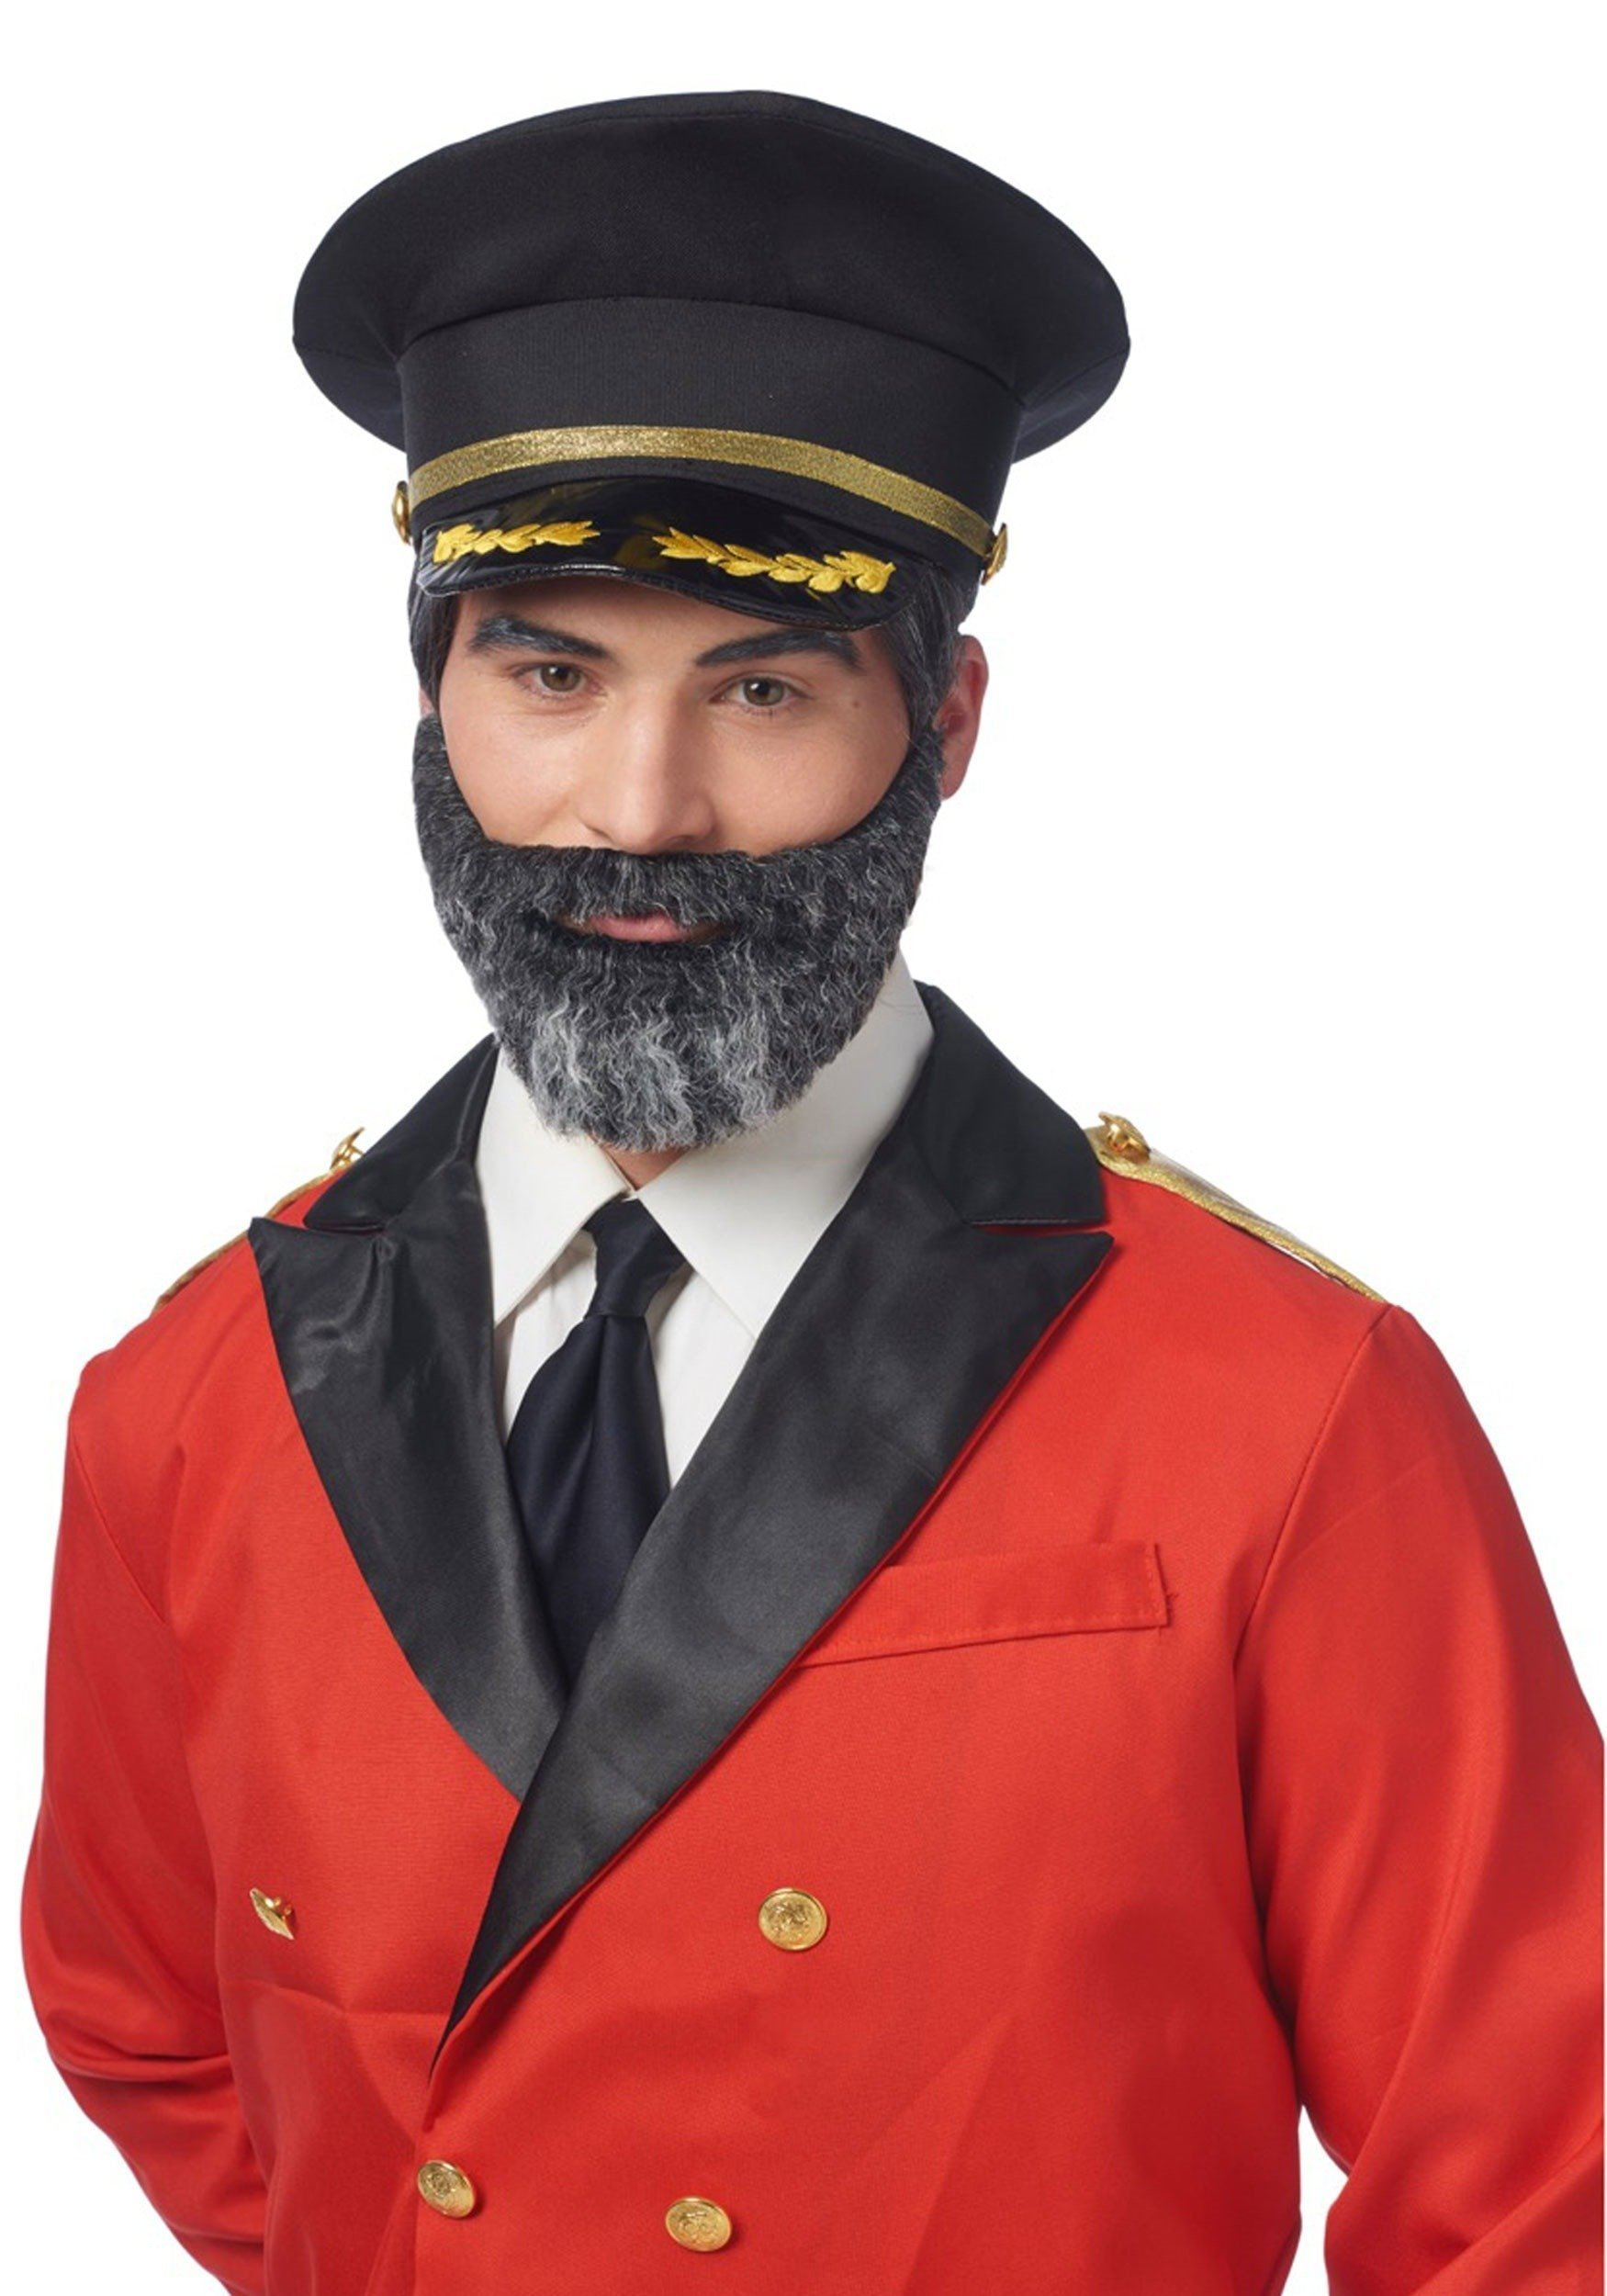 Mustache and Beard Captain Obvious - ST